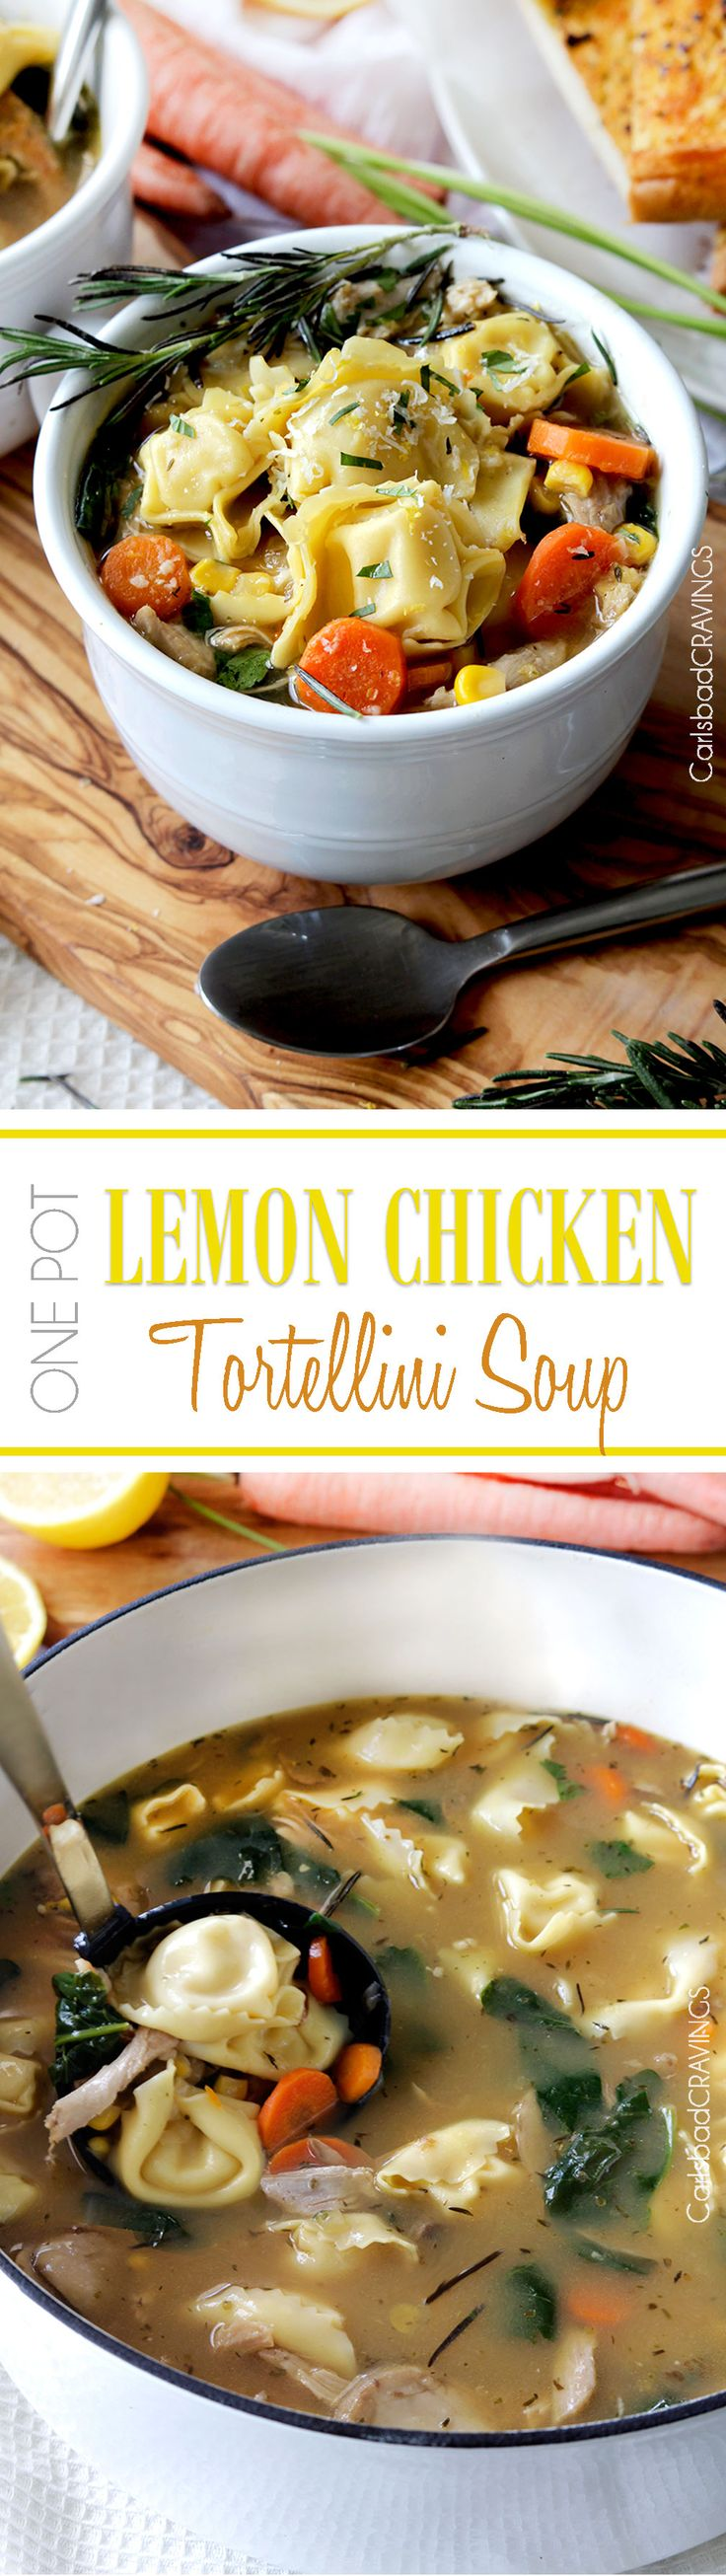 30 Minute, One Pot Lemon Chicken Tortellini Soup bursting with pillows of cheesy tortellini, tender chicken, and vegetables kissed with bright, refreshing lemon juice.  the best lemon soup!  #30minute #soup #lemonsoup #onepot #chickensoup #tortellini